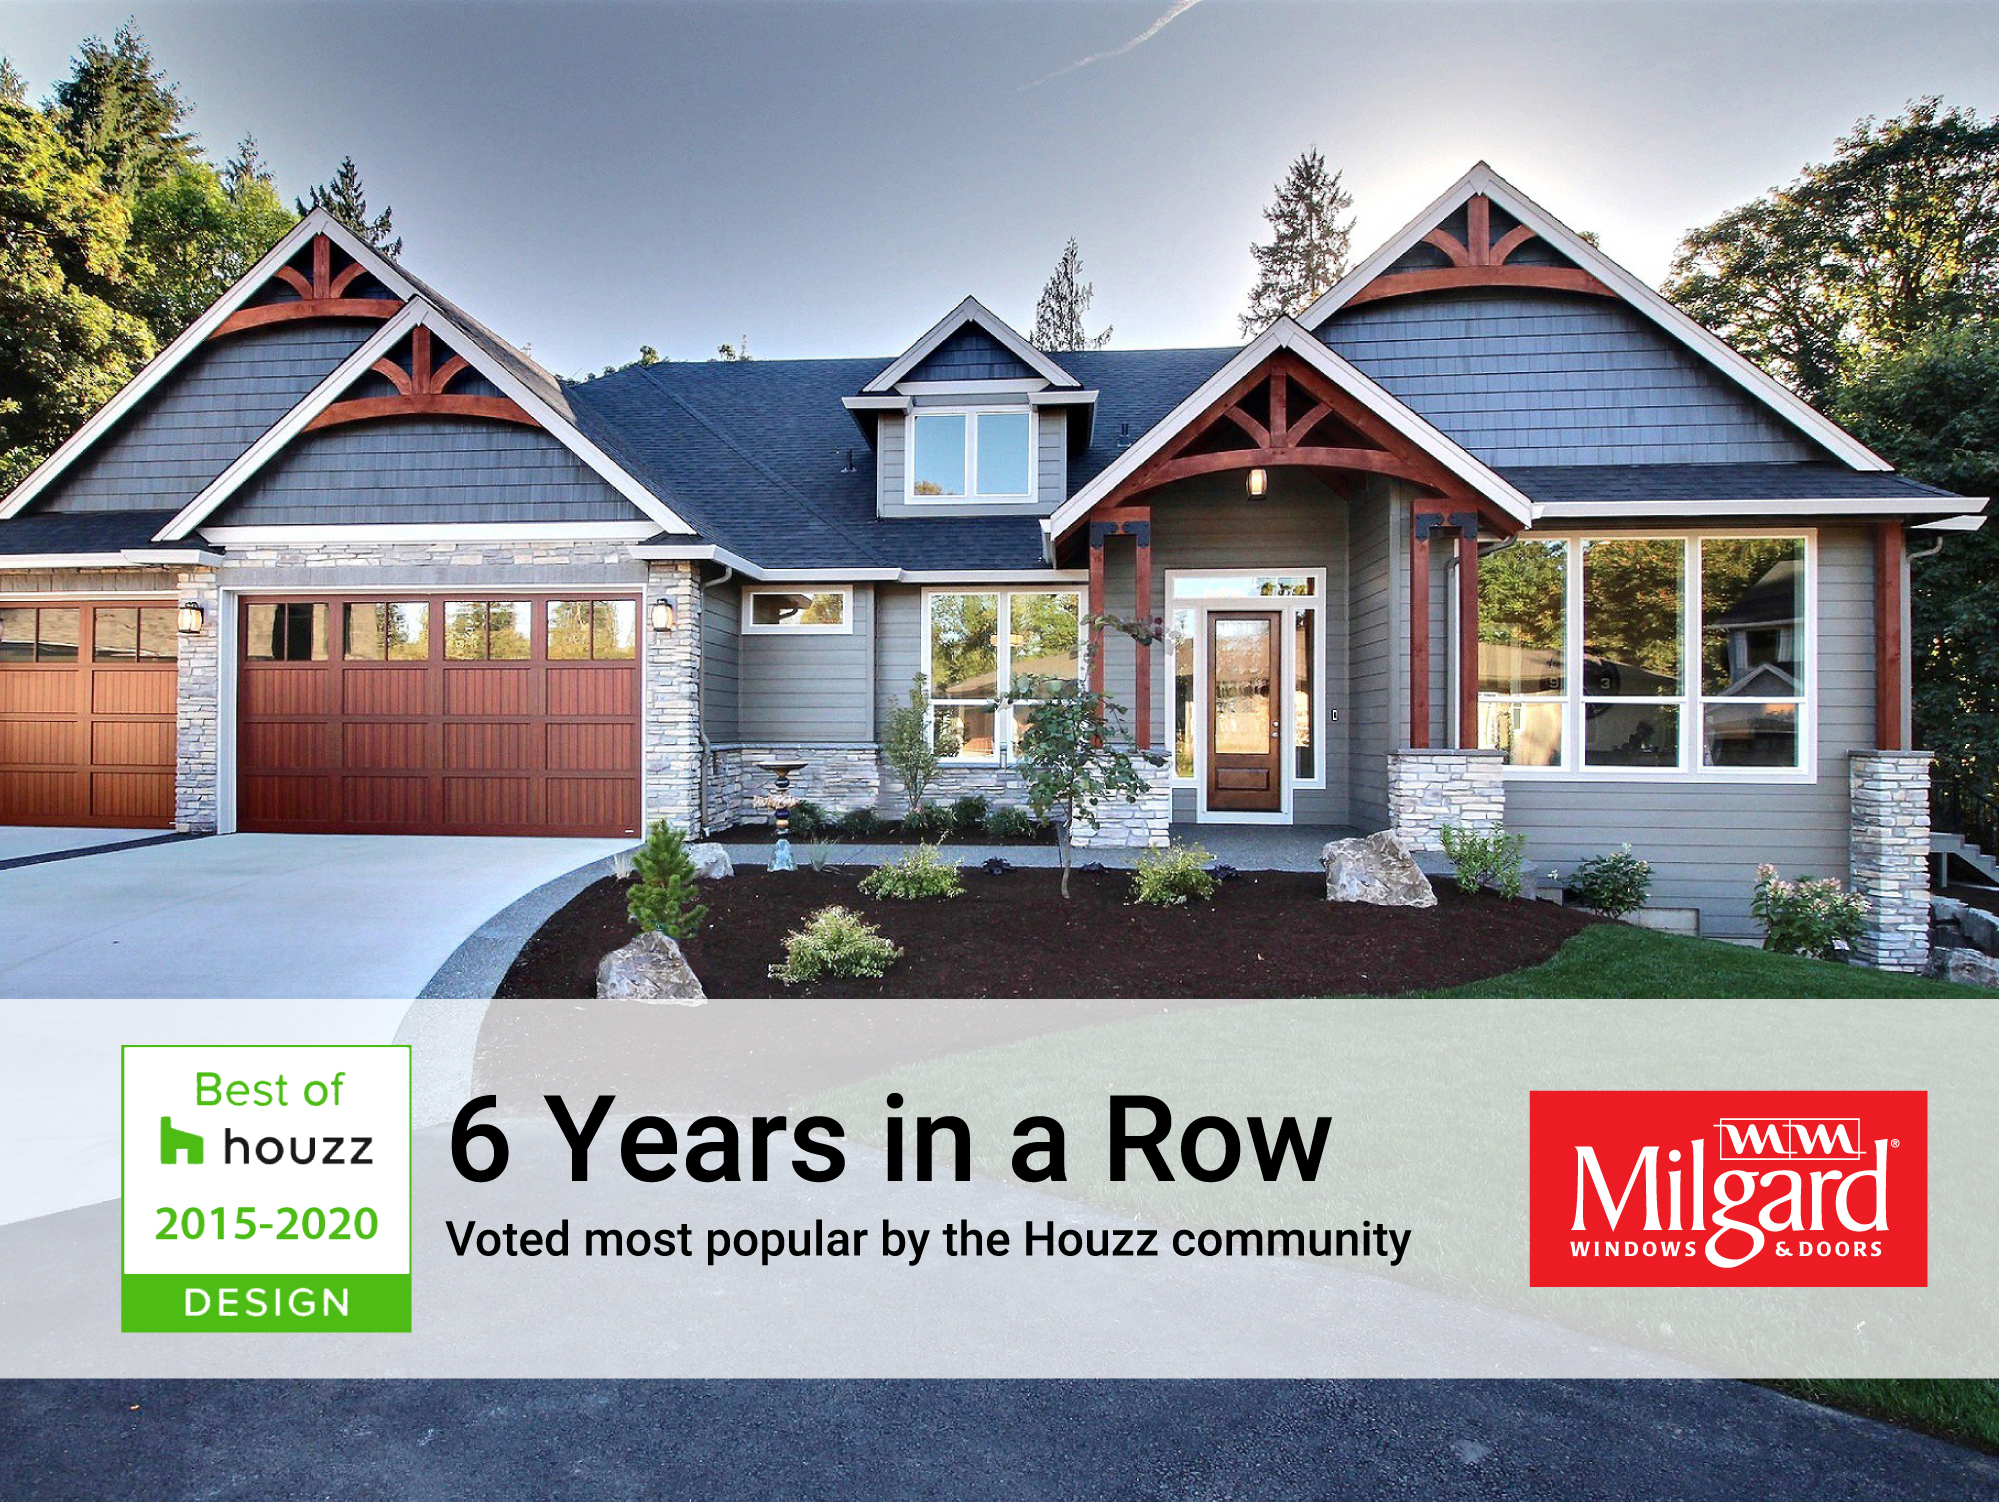 Best of Houzz Design 2020